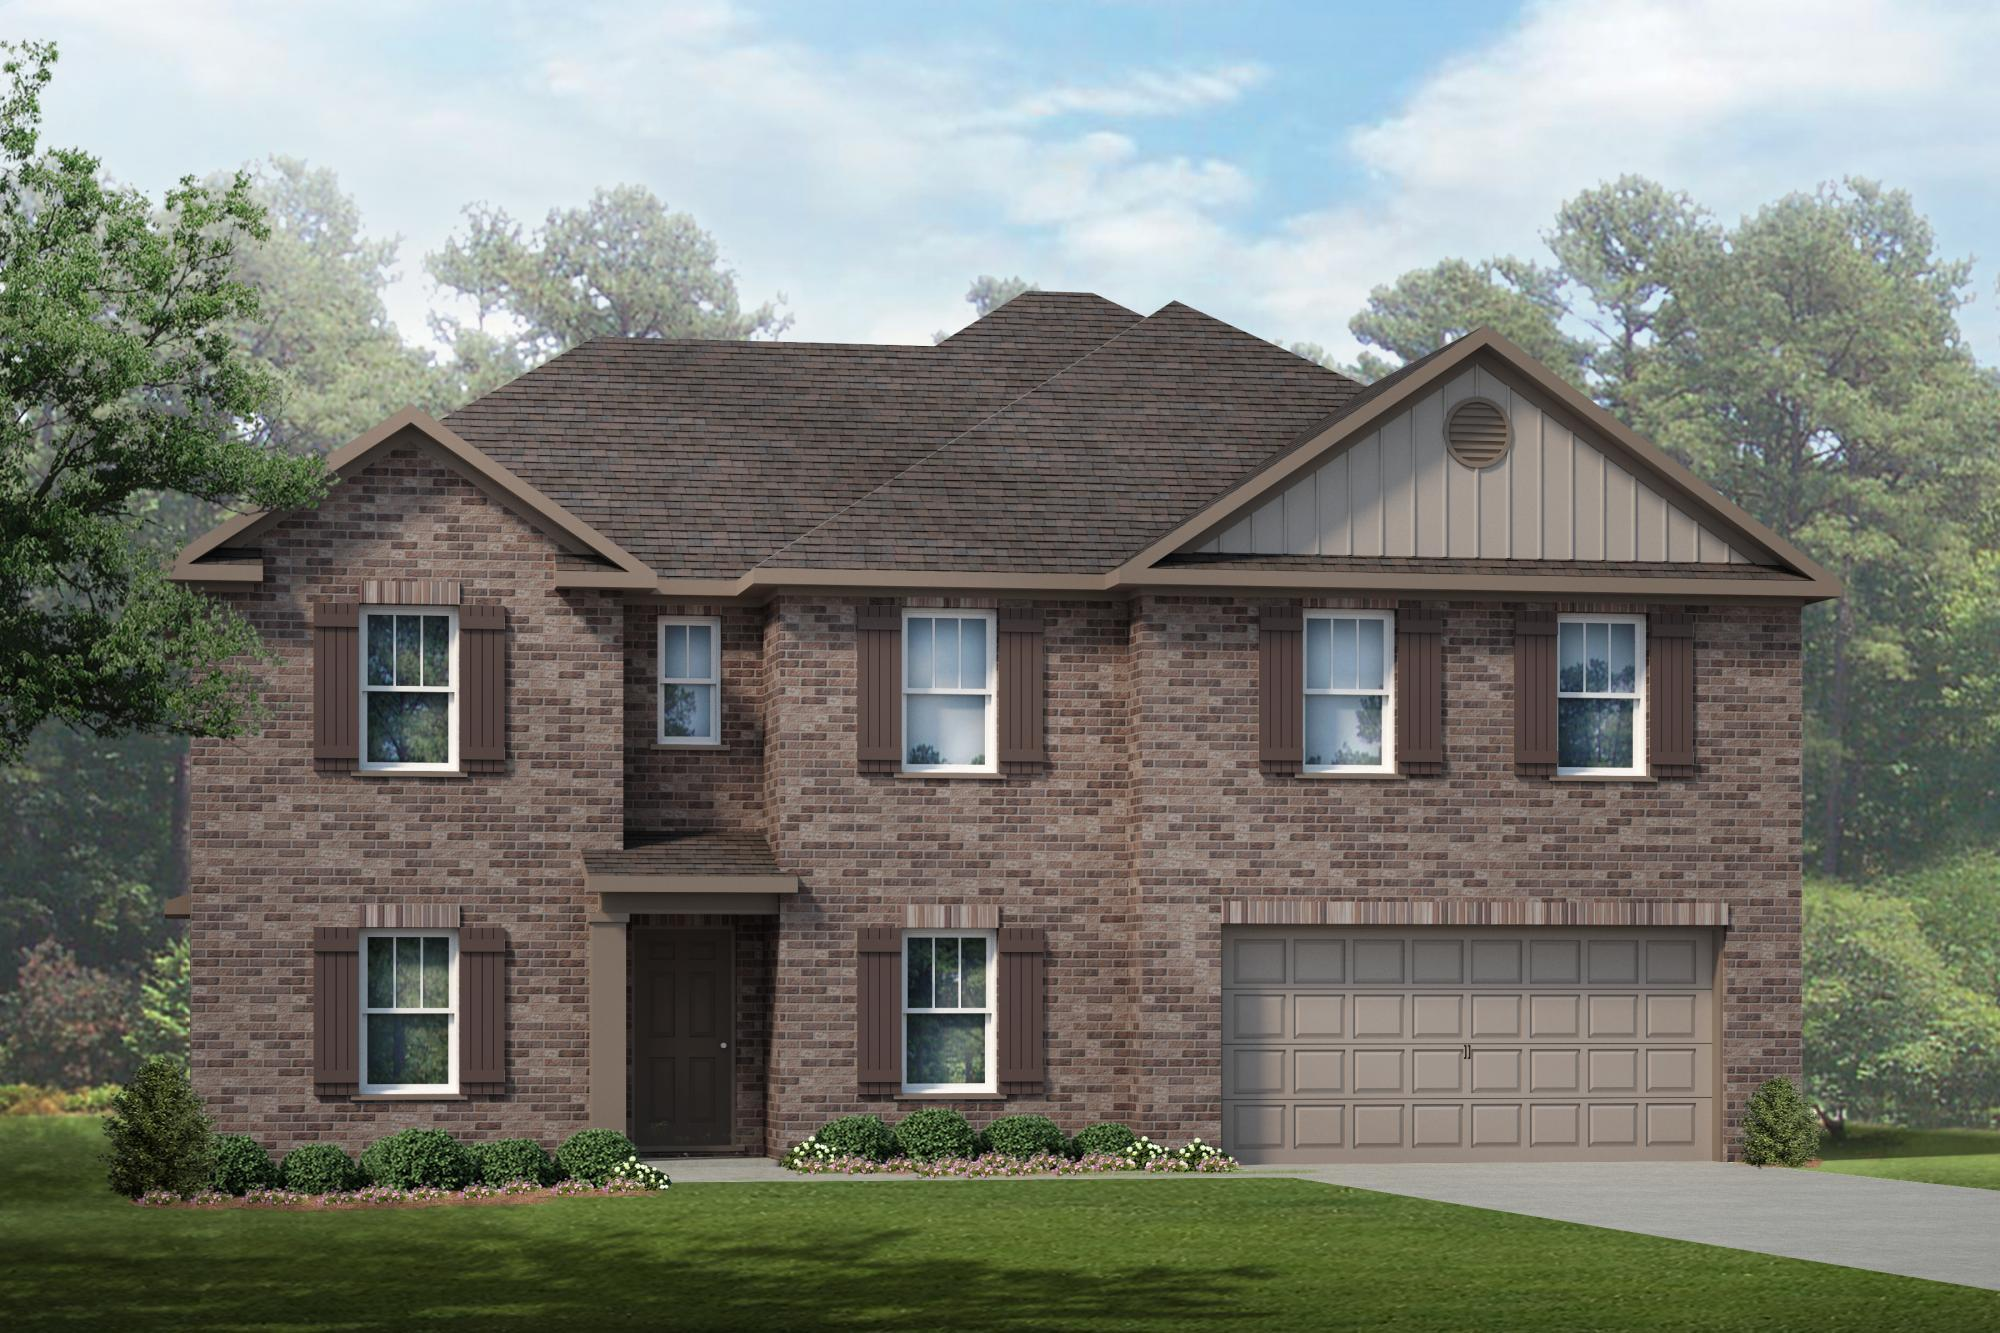 Single Family for Sale at Burwell Gardens - The Carrollton 240 Fenrose Drive Harvest, Alabama 35749 United States